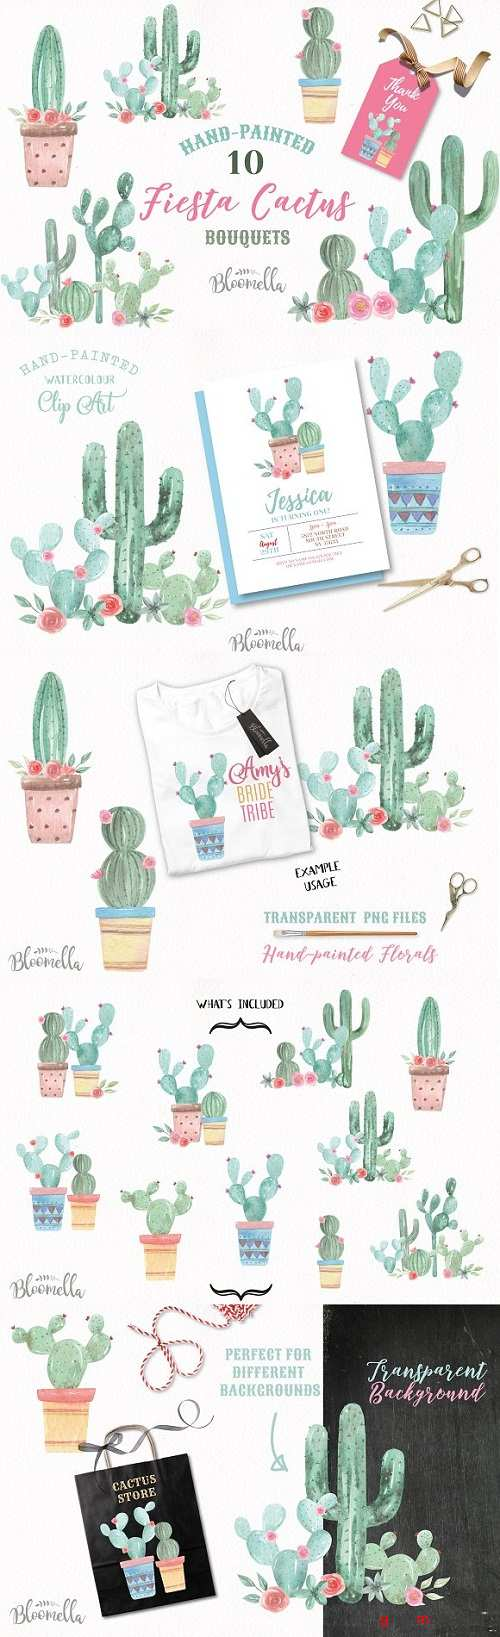 Cactus Watercolor Painted Clipart - 3087354